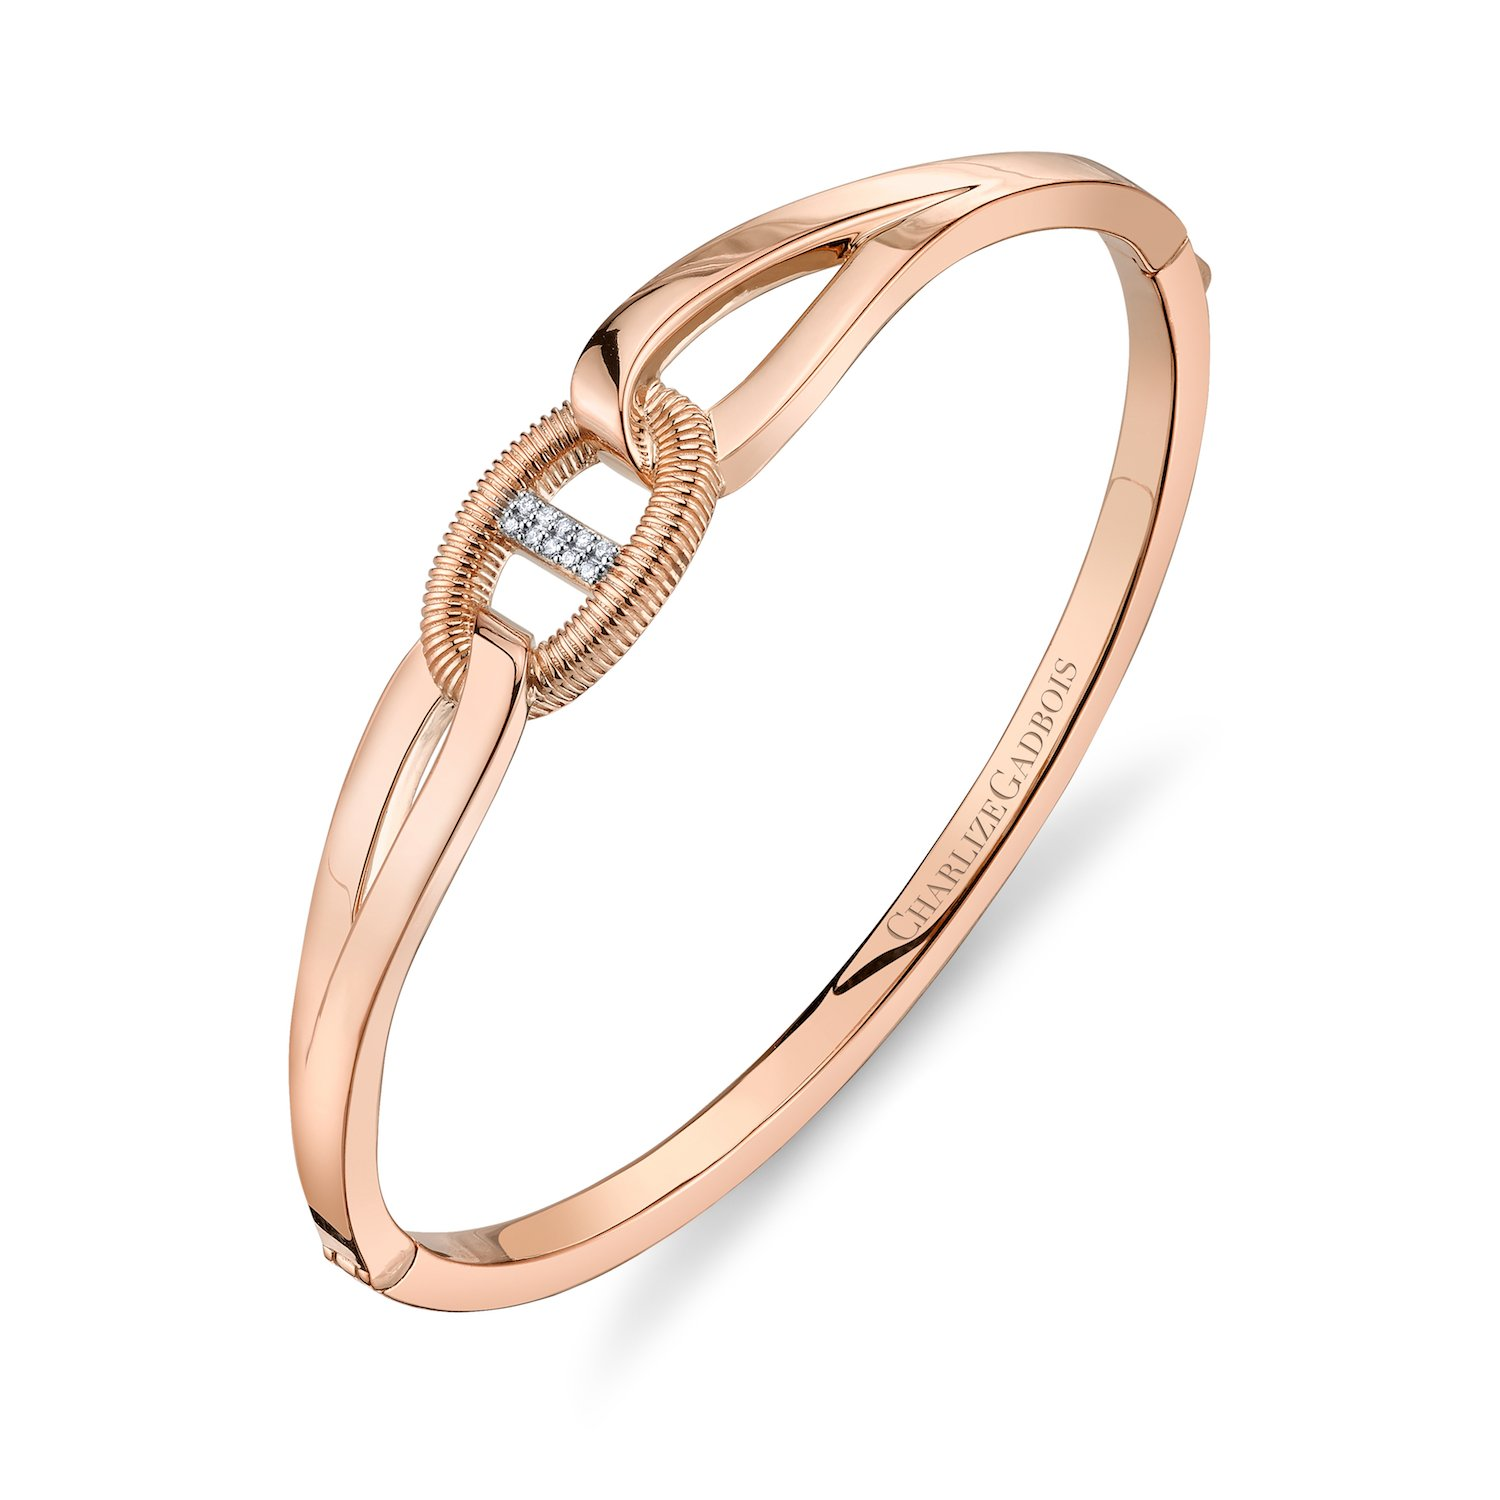 CHARLIZE GADBOIS 925 Sterling Silver Diamond Center Buckle Cuff Bangle Bracelet, Rose Gold Plated